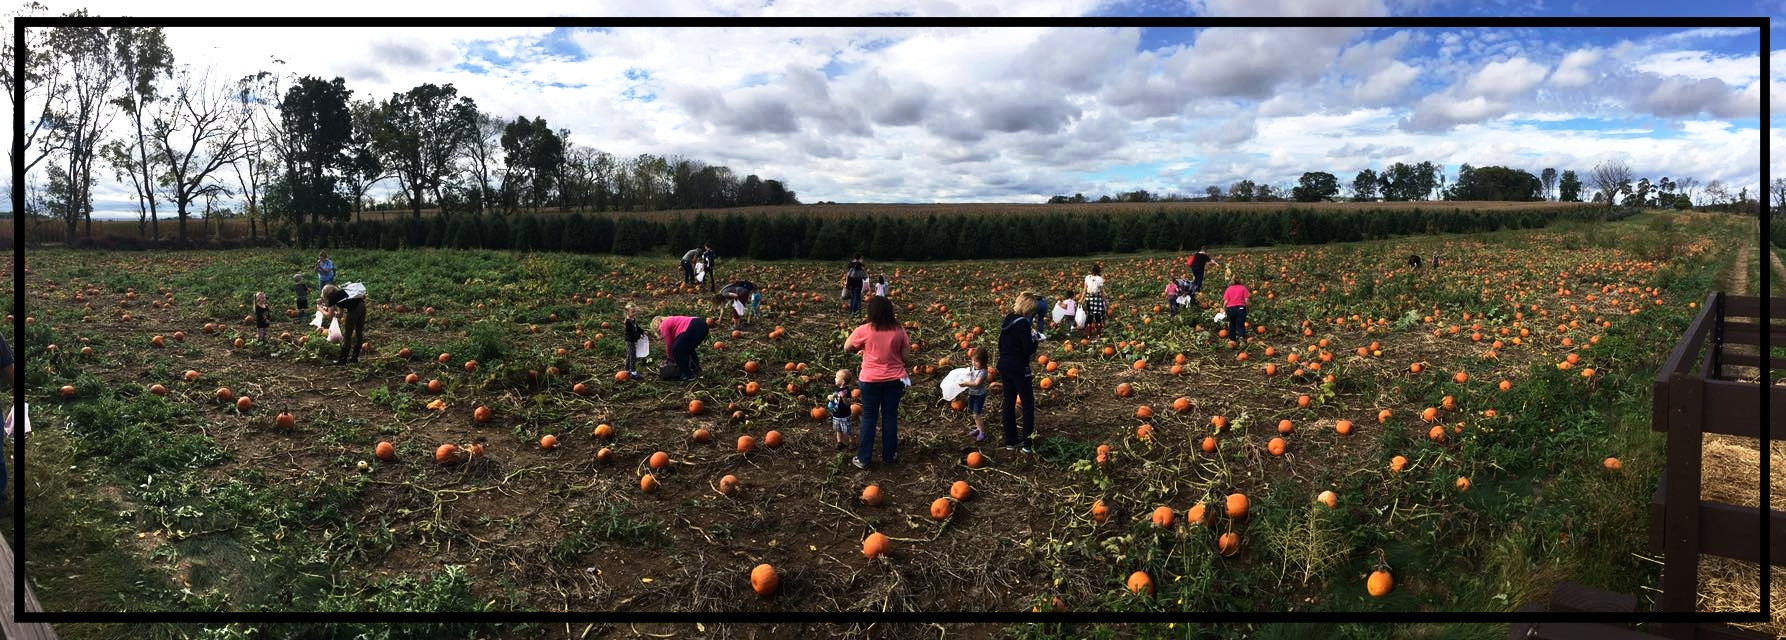 Private Pumpkin Patch For Our Younger Birthday Party Guests.